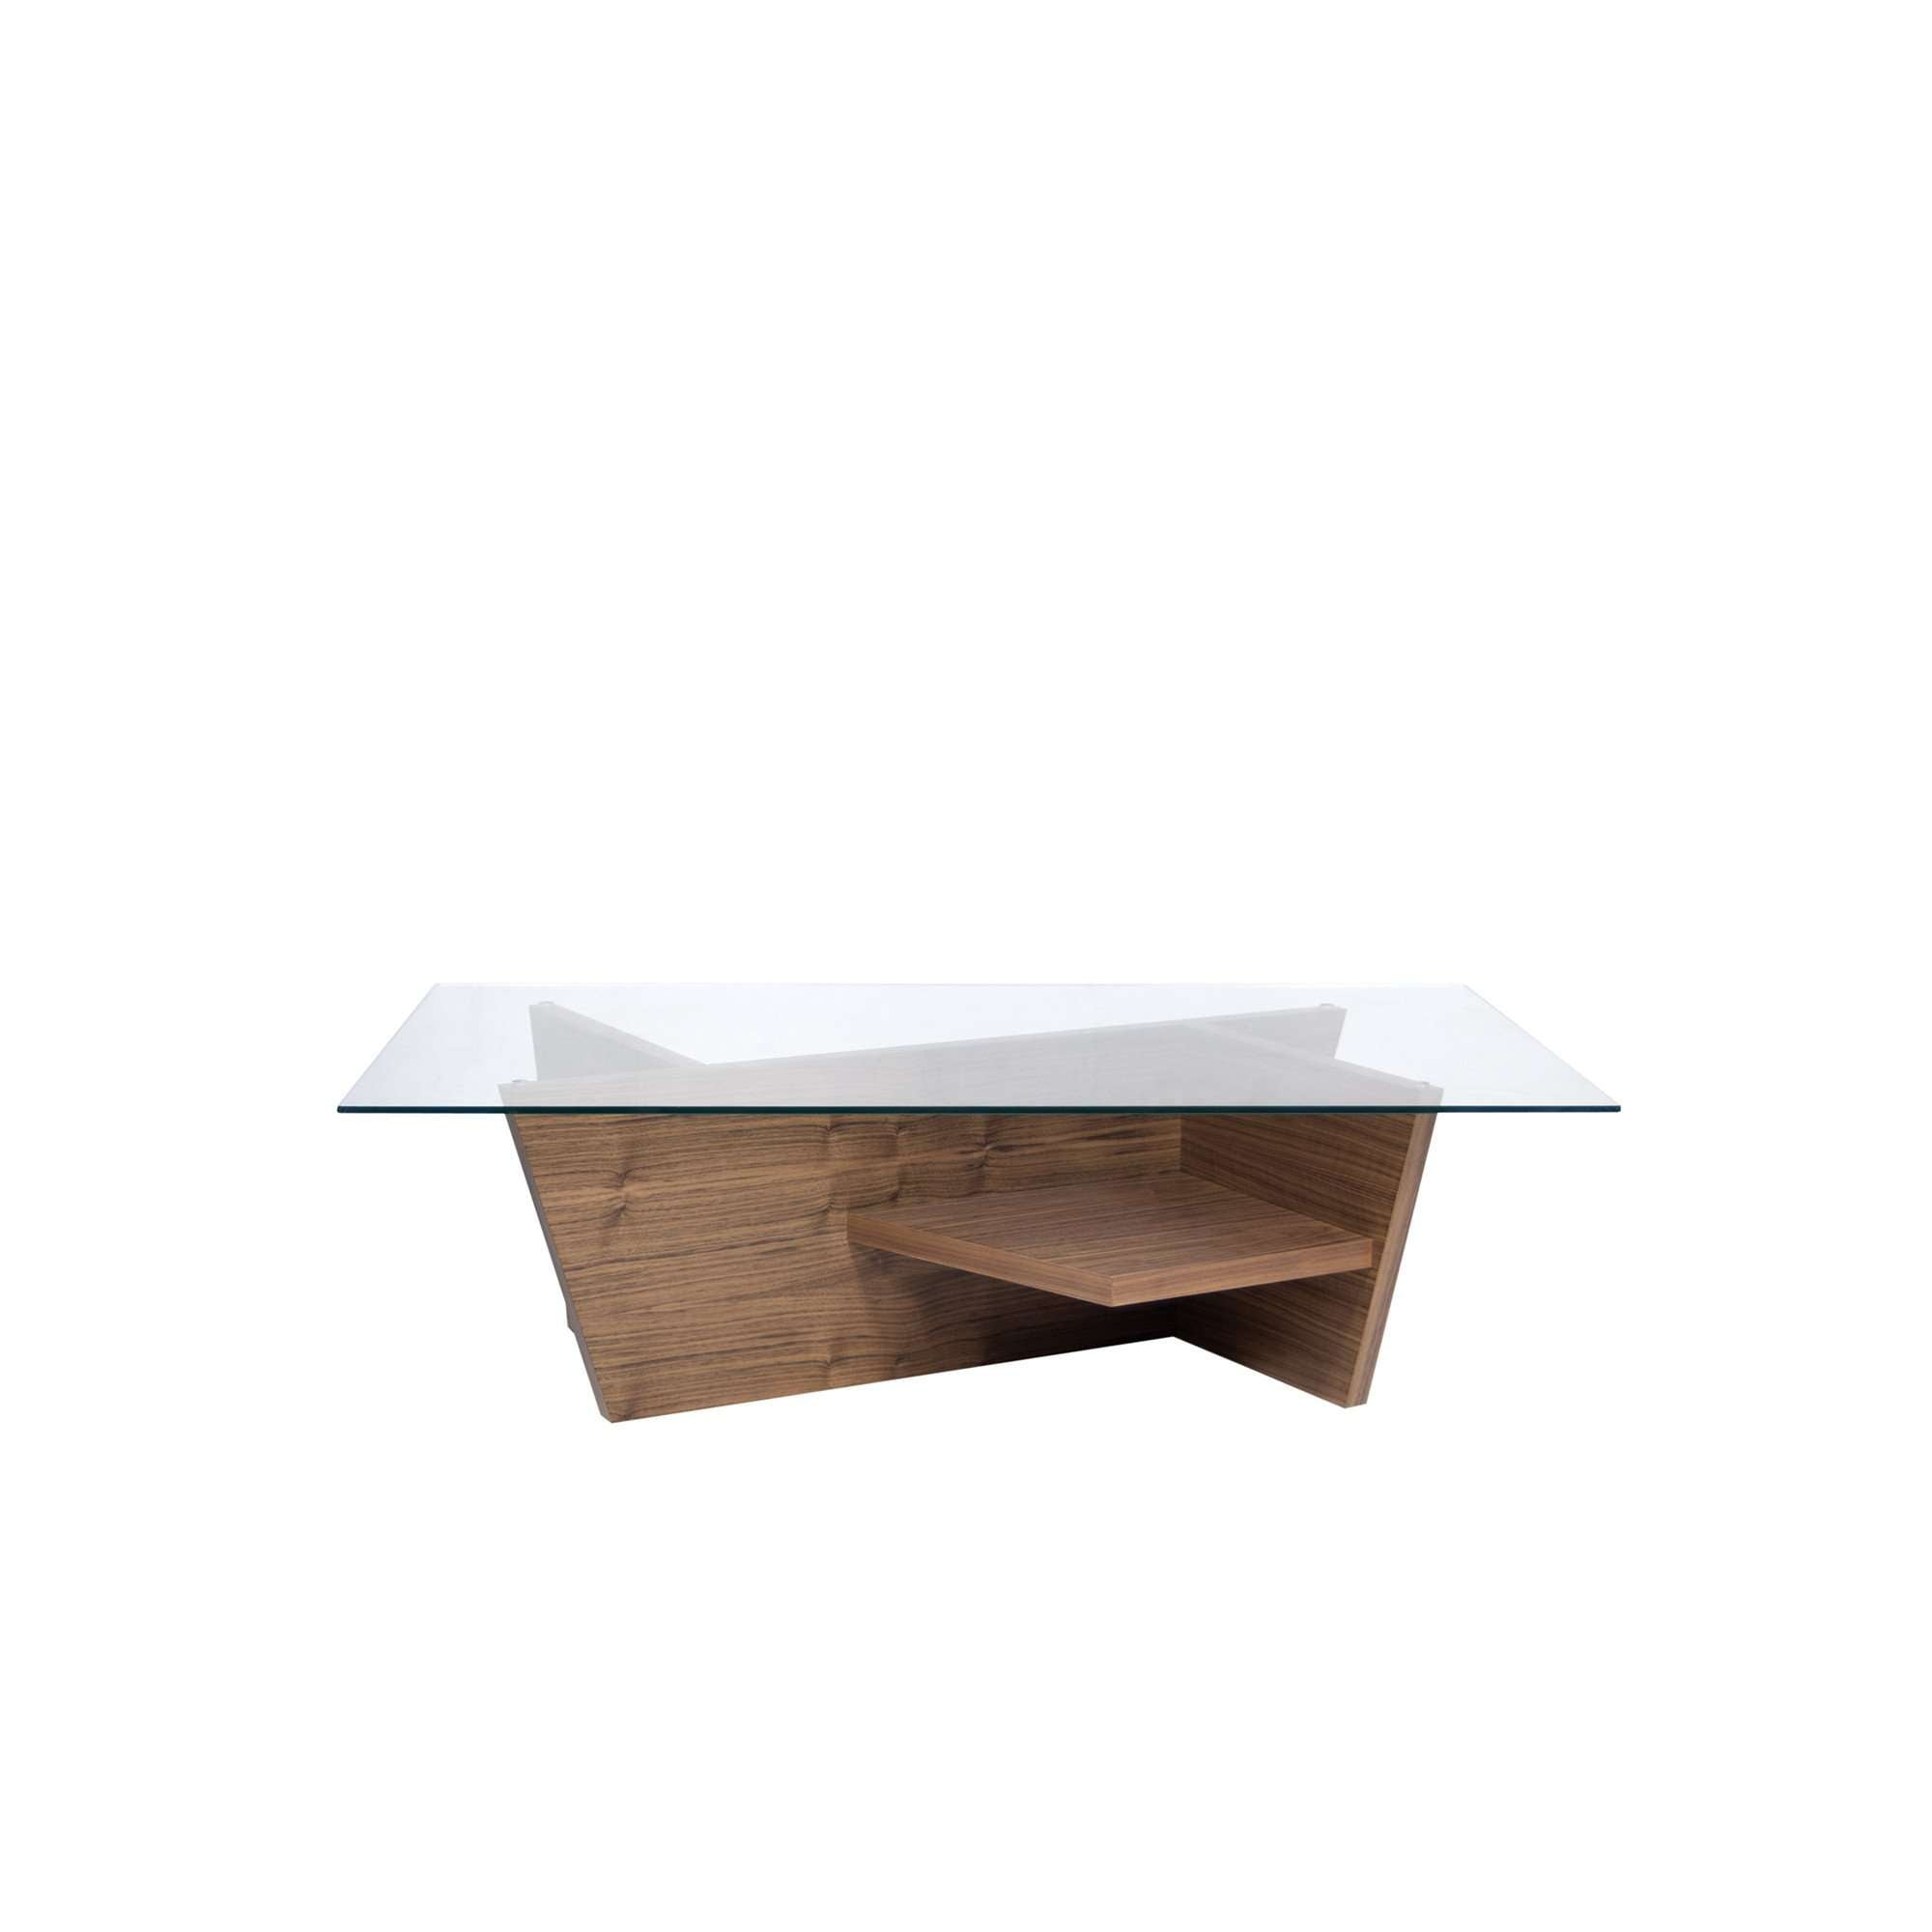 Tema Home-Oliva Coffee Table 128042-OLIVACOFFEE-Coffee Table-MODTEMPO